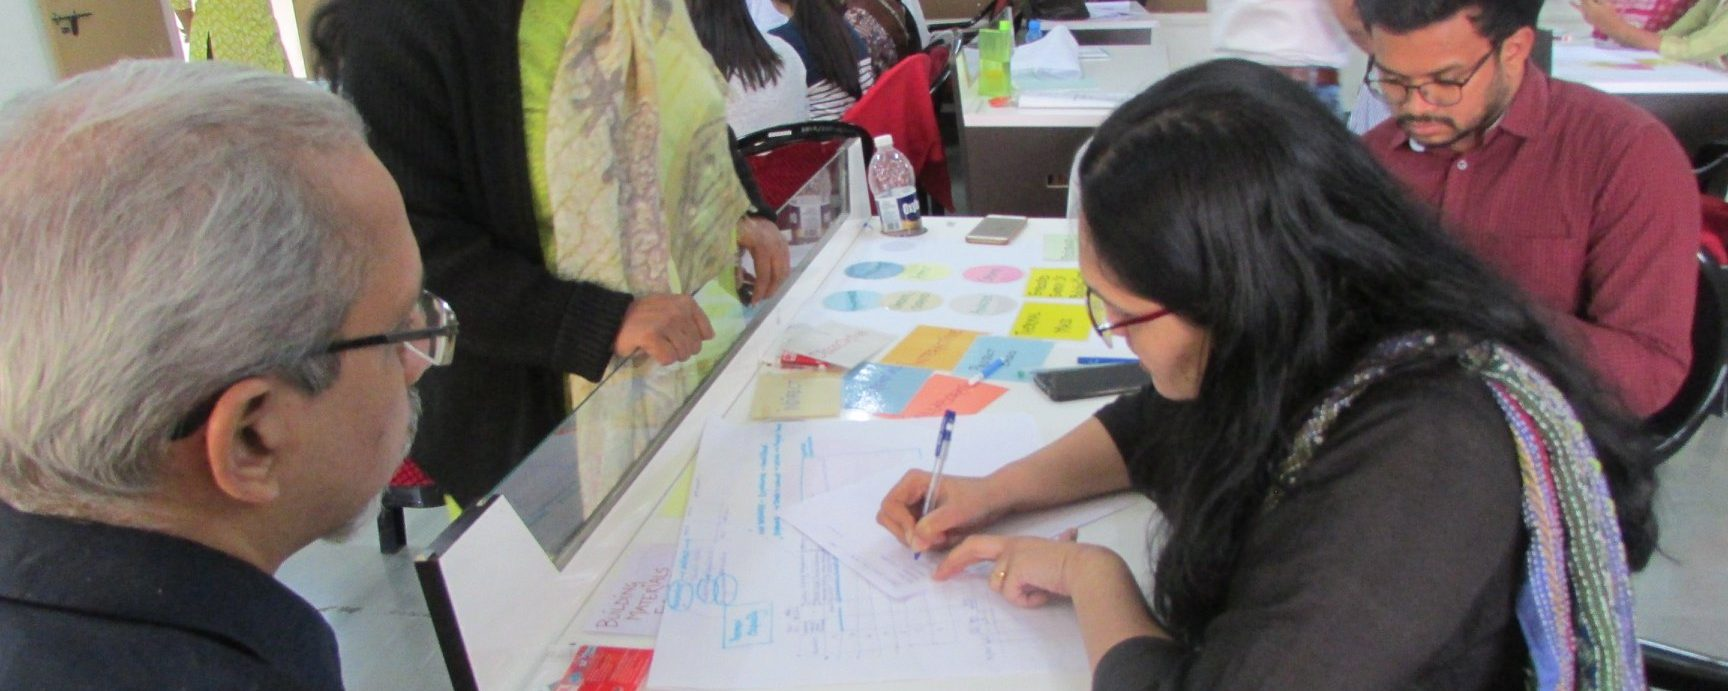 Responsibility Begins Here: Sustainability in Architecture and Engineering Education